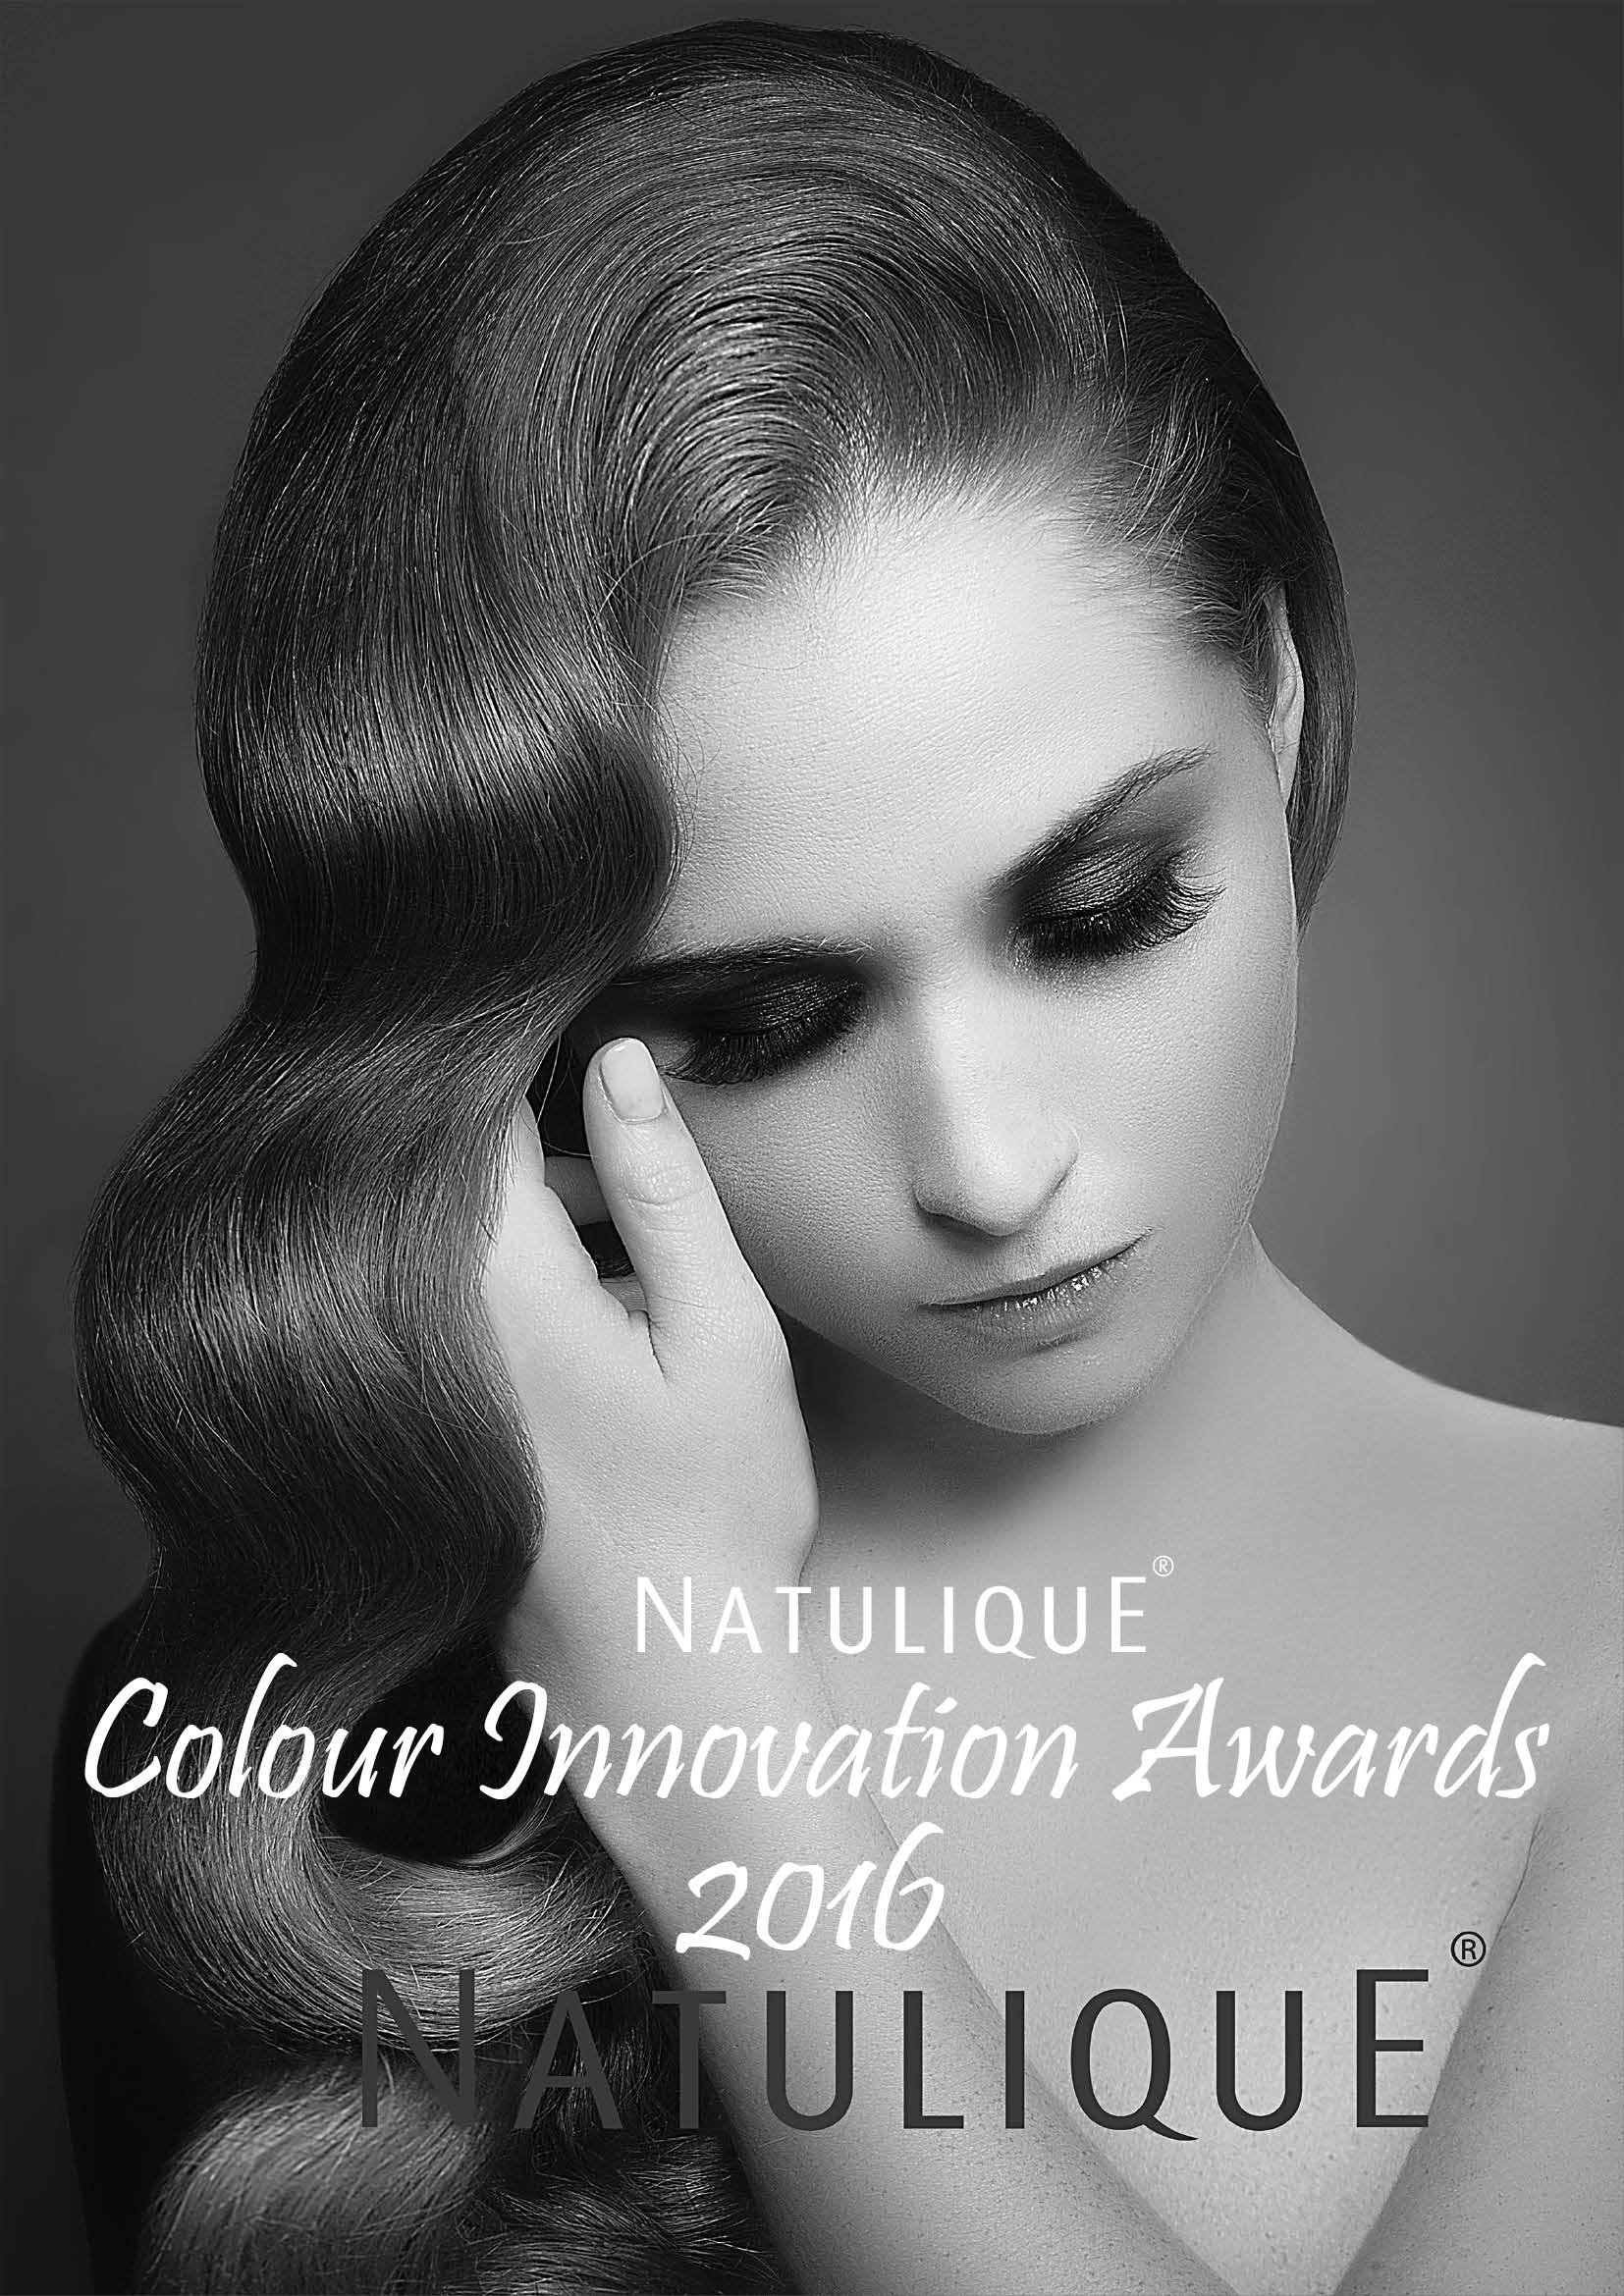 Natulique Colour Innovation